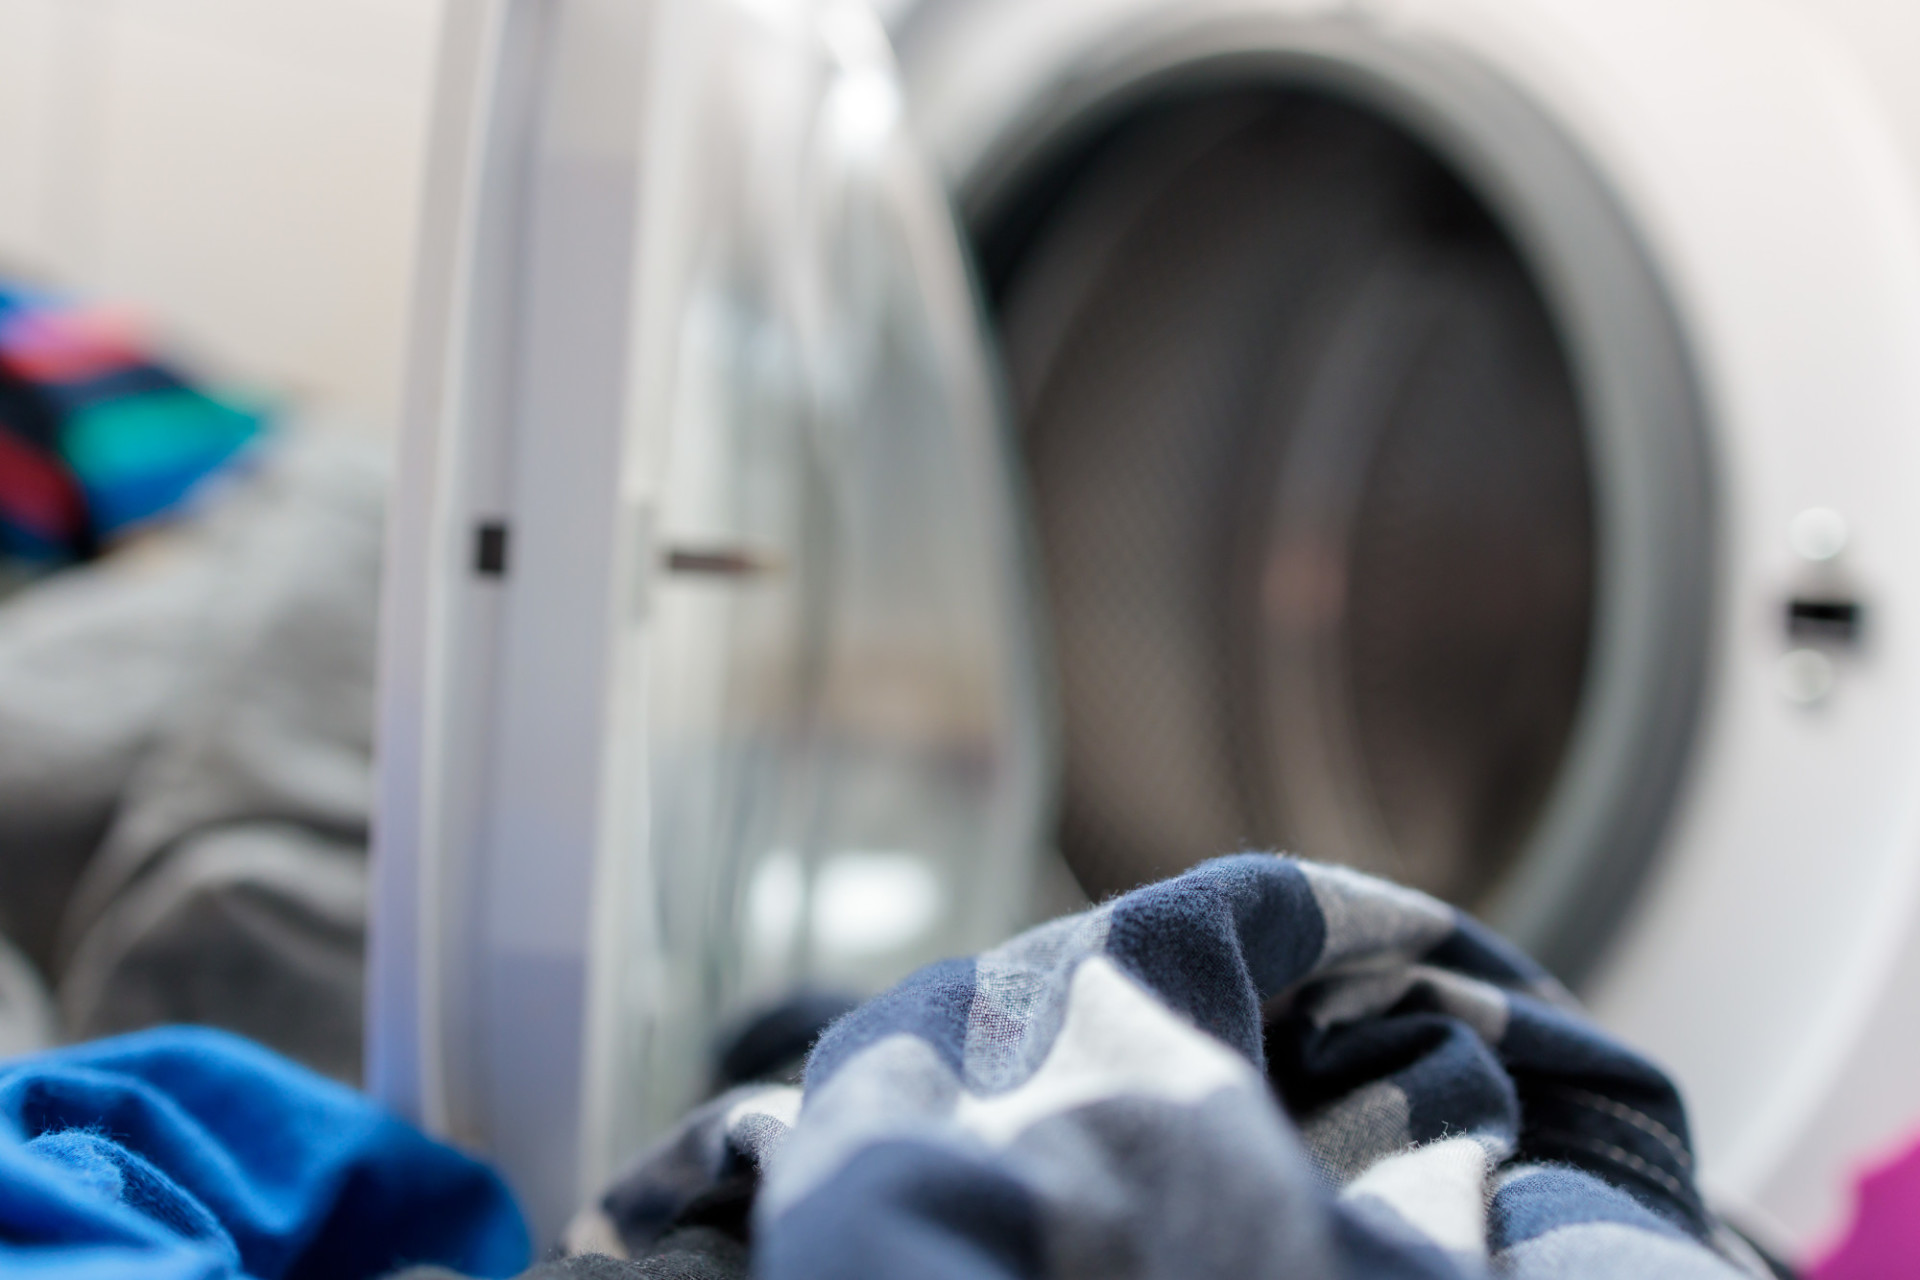 Dirty laundry in front of a washing machine